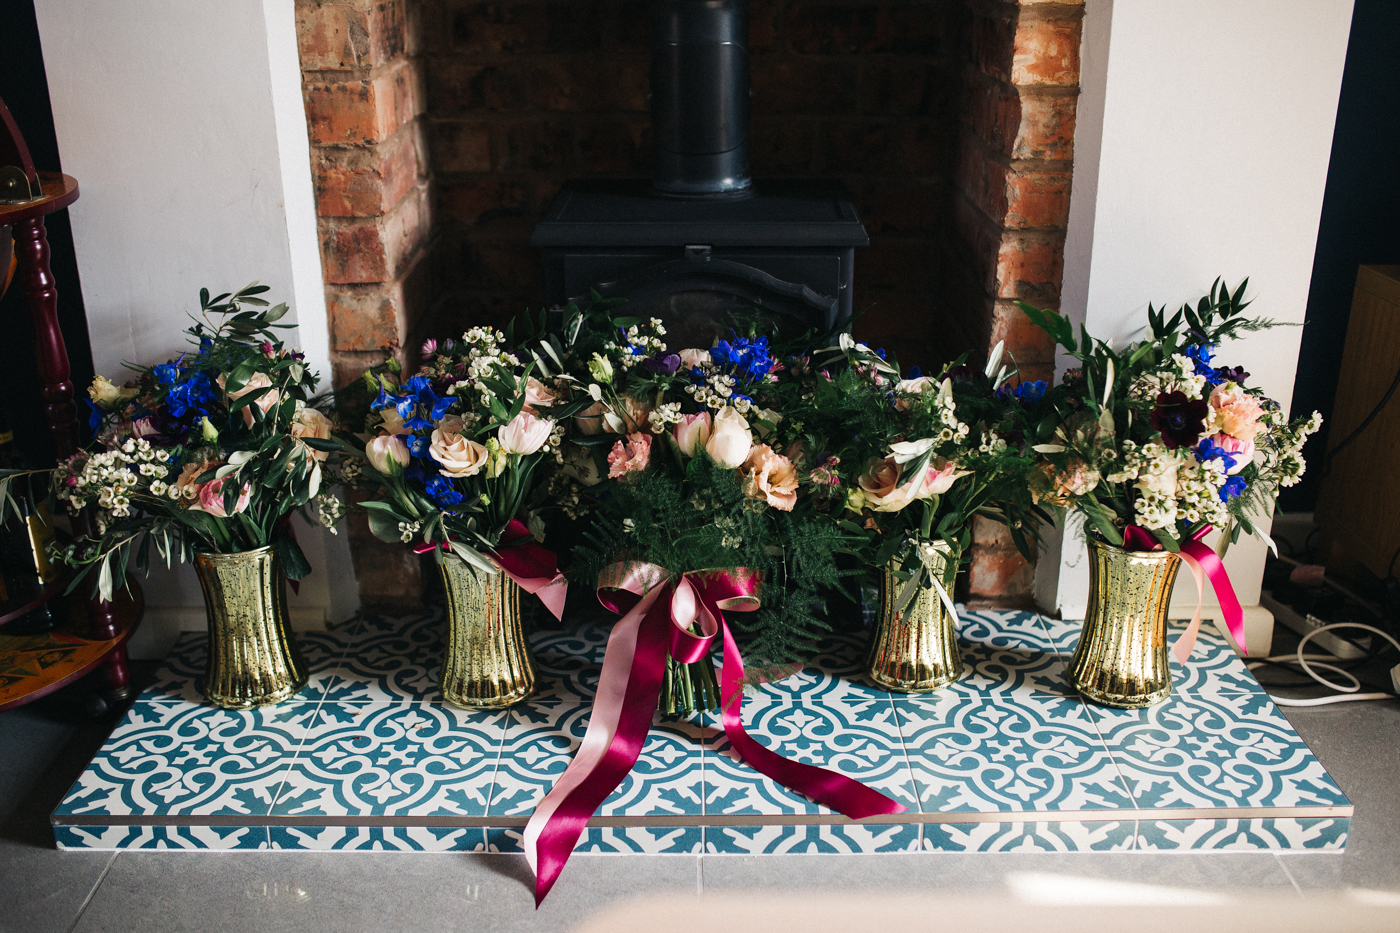 colourful wildflower bouquets on the fireplace. ceremony at st georges hall liverpool, oh me oh my wedding reception, north west wedding photographer